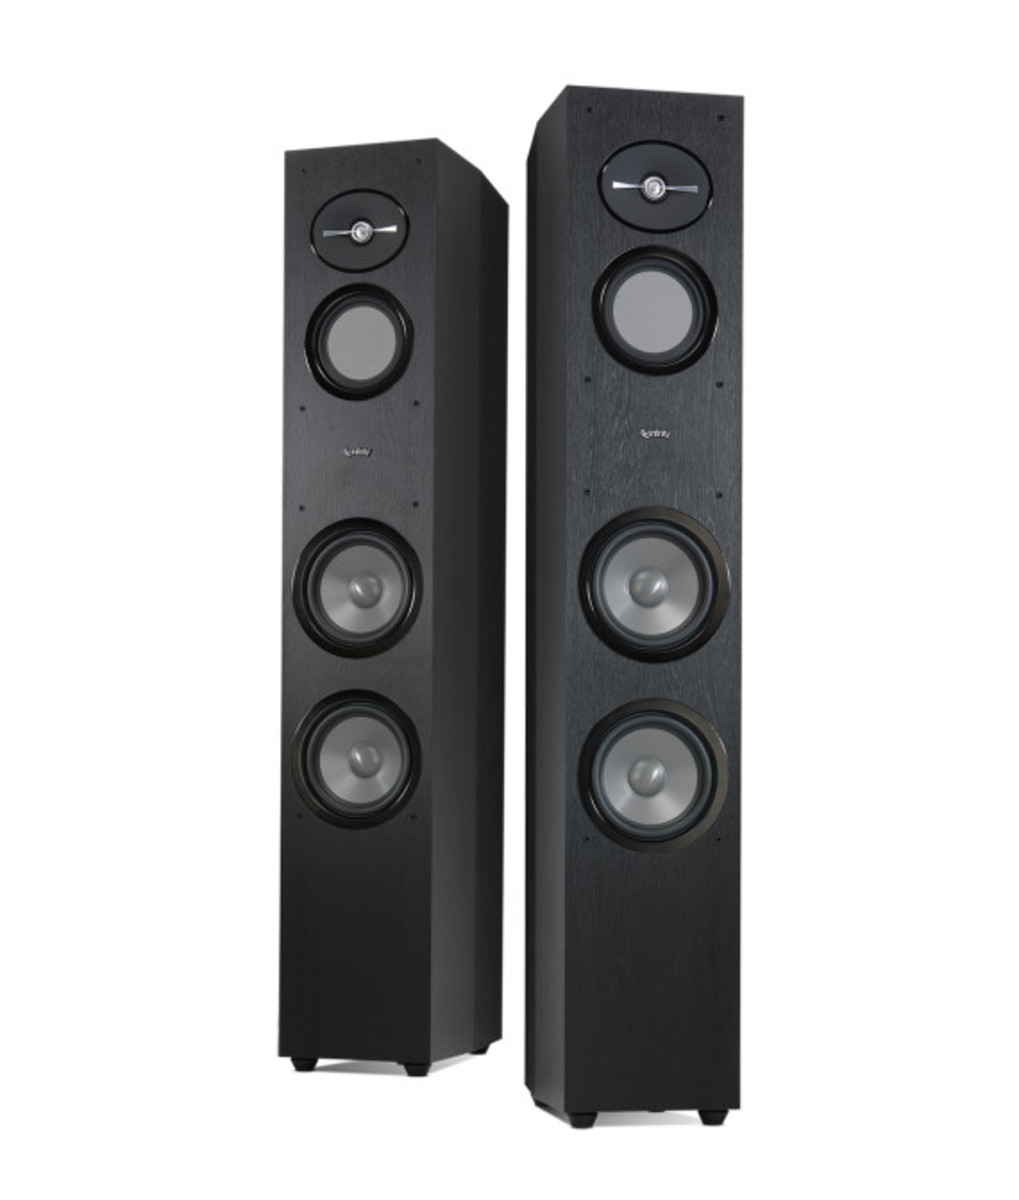 harman-infinity-reference-series-loudspeakers-04